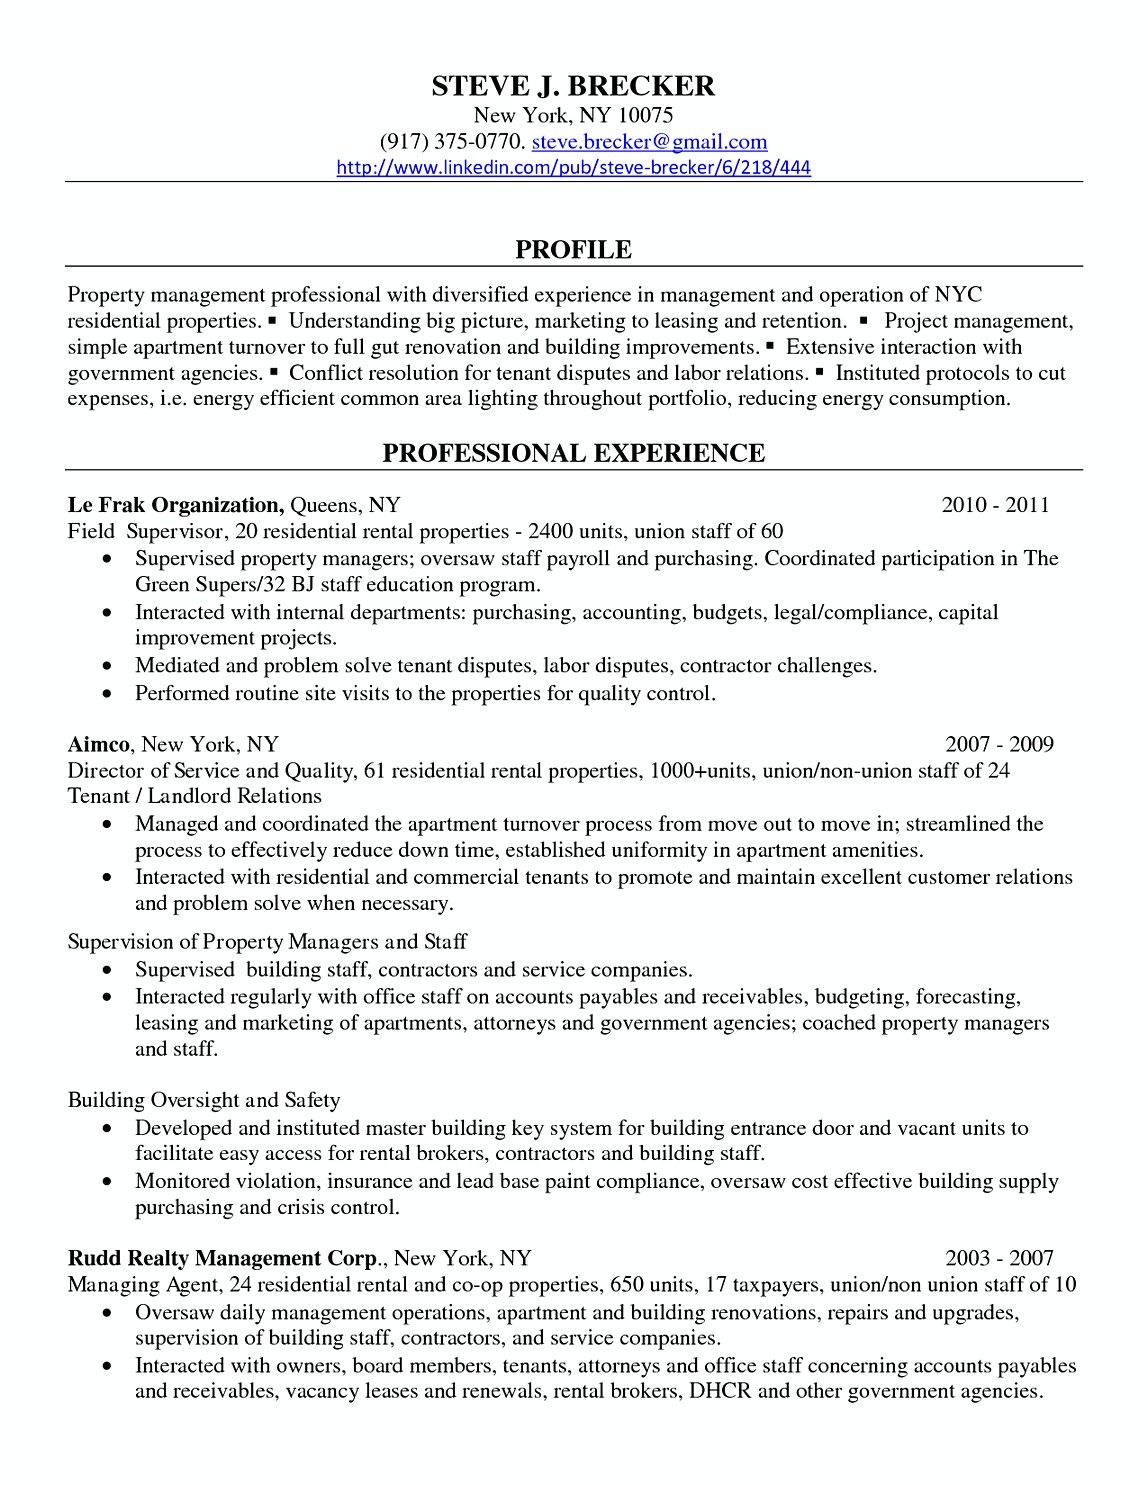 Apartment Manager Resume Enchanting Property Manager Professional Resume Samples  Commercial Property .